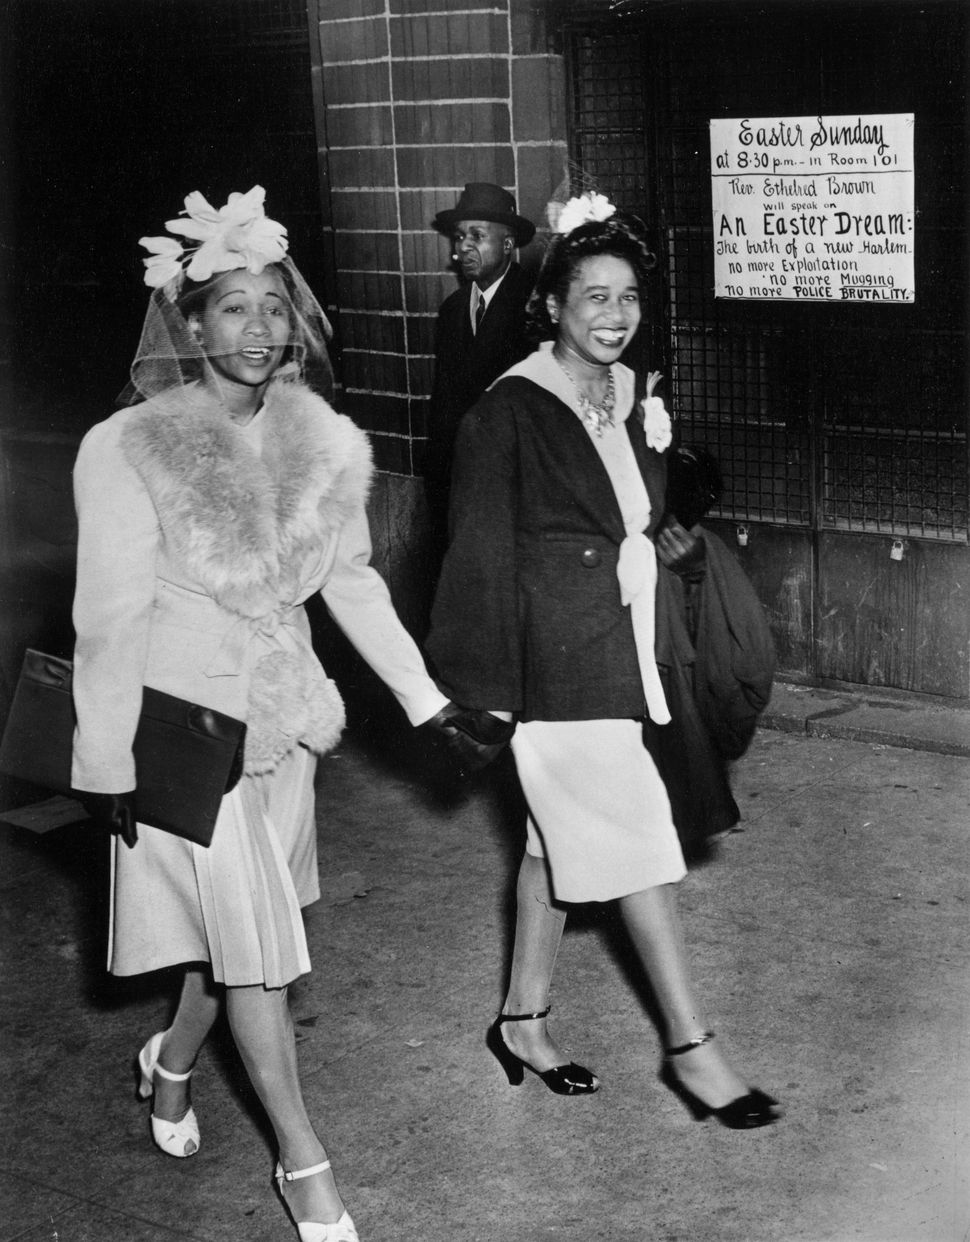 Two women leaving church in Harlem on Easter Sunday in 1943, wearing their Sunday best.